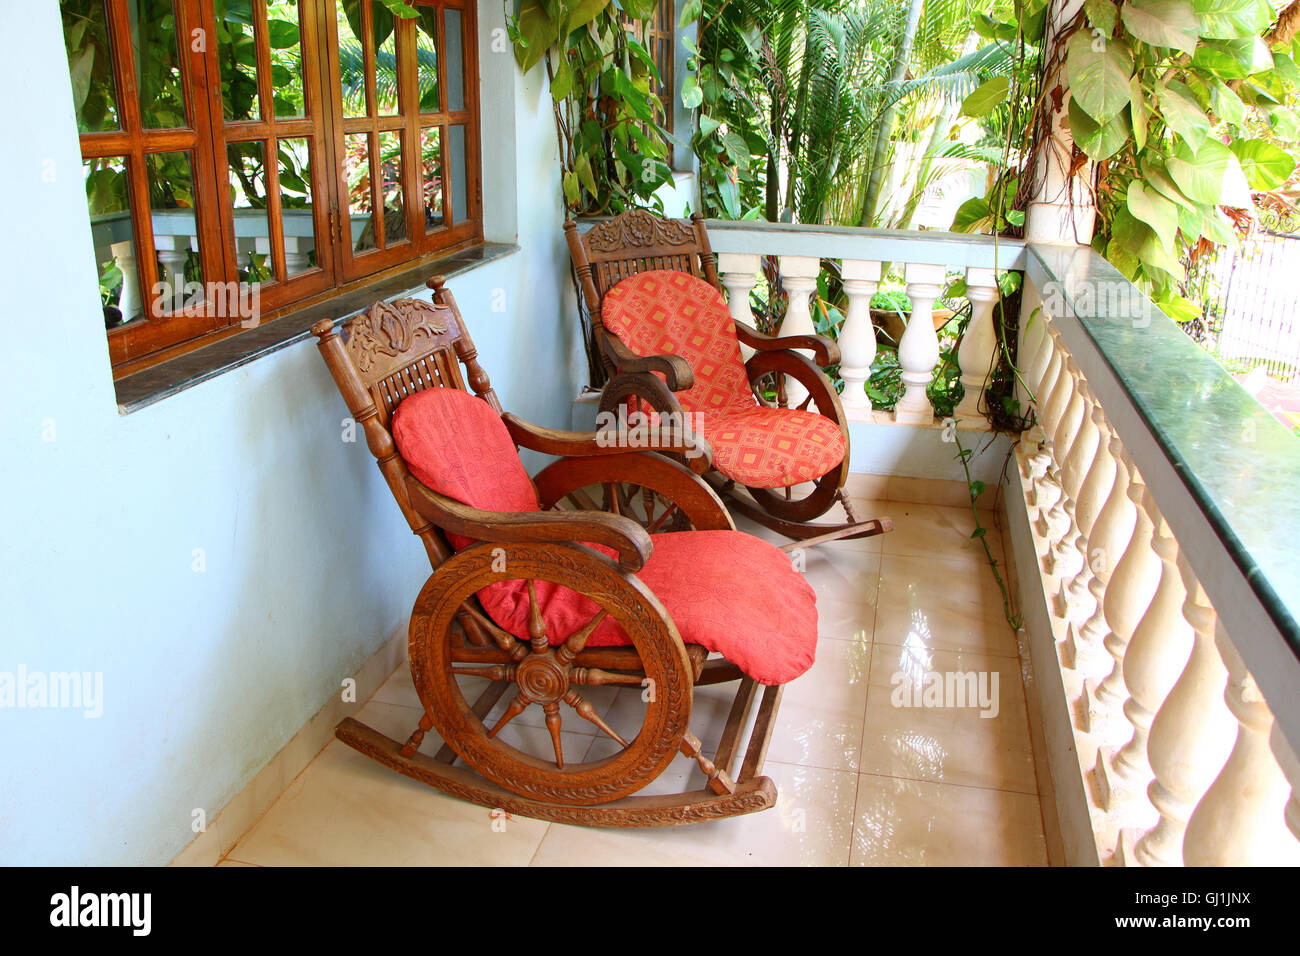 rocking chairs on the veranda, south india, palm resort, veranda chair, terrace chairs, terrace in hotel, marble - Stock Image